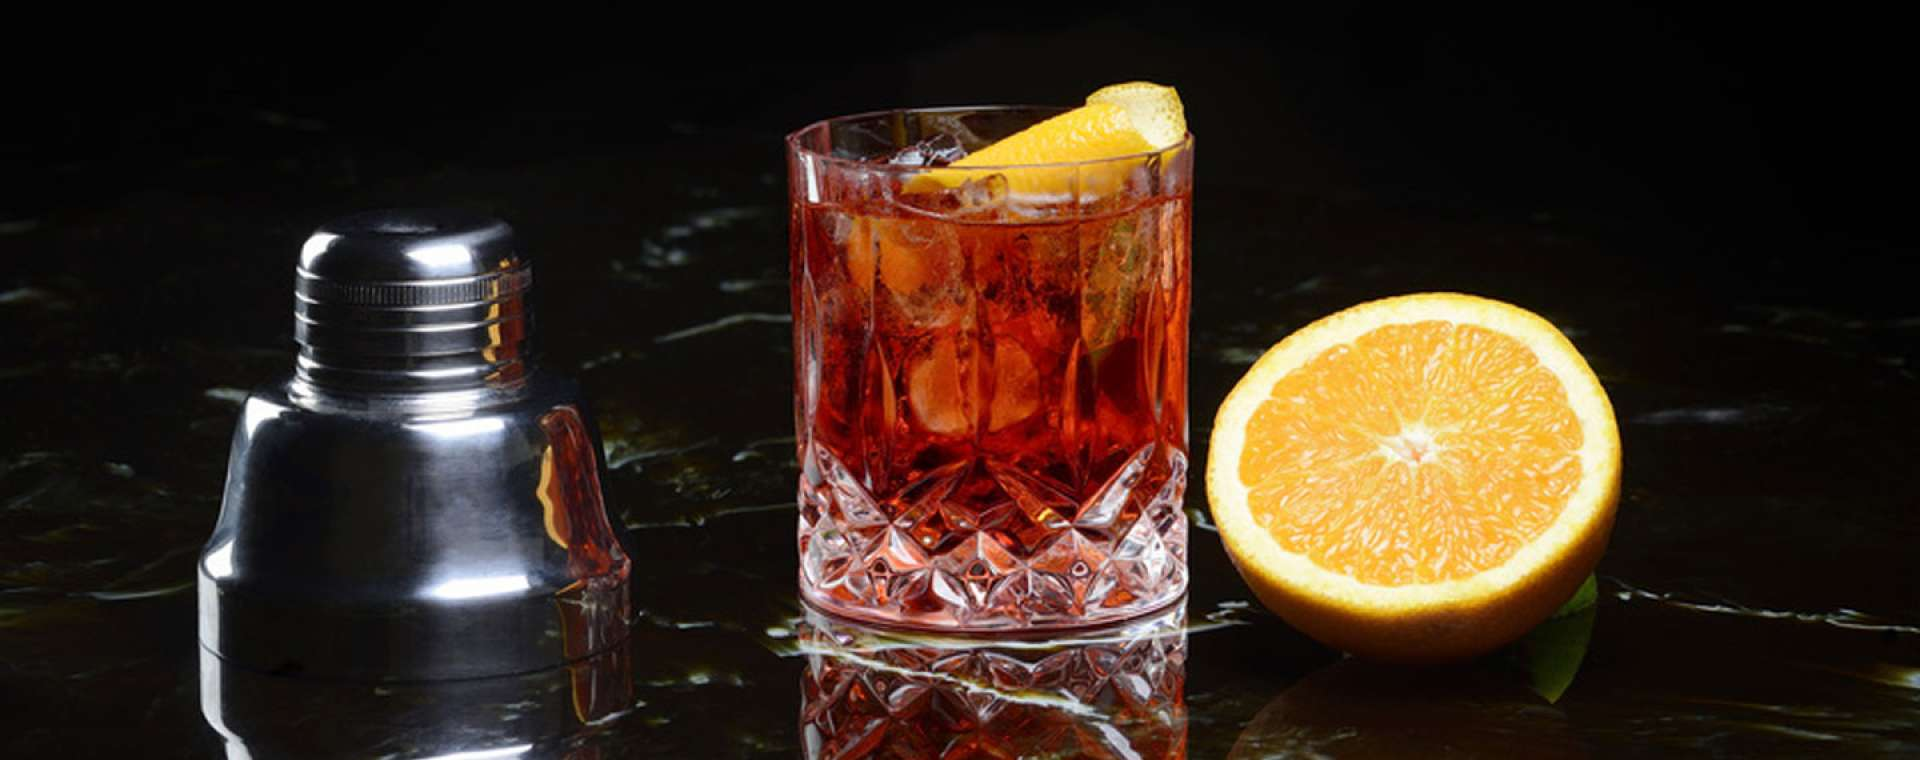 The Negroni: An Iconic Cocktail Invented in Florence